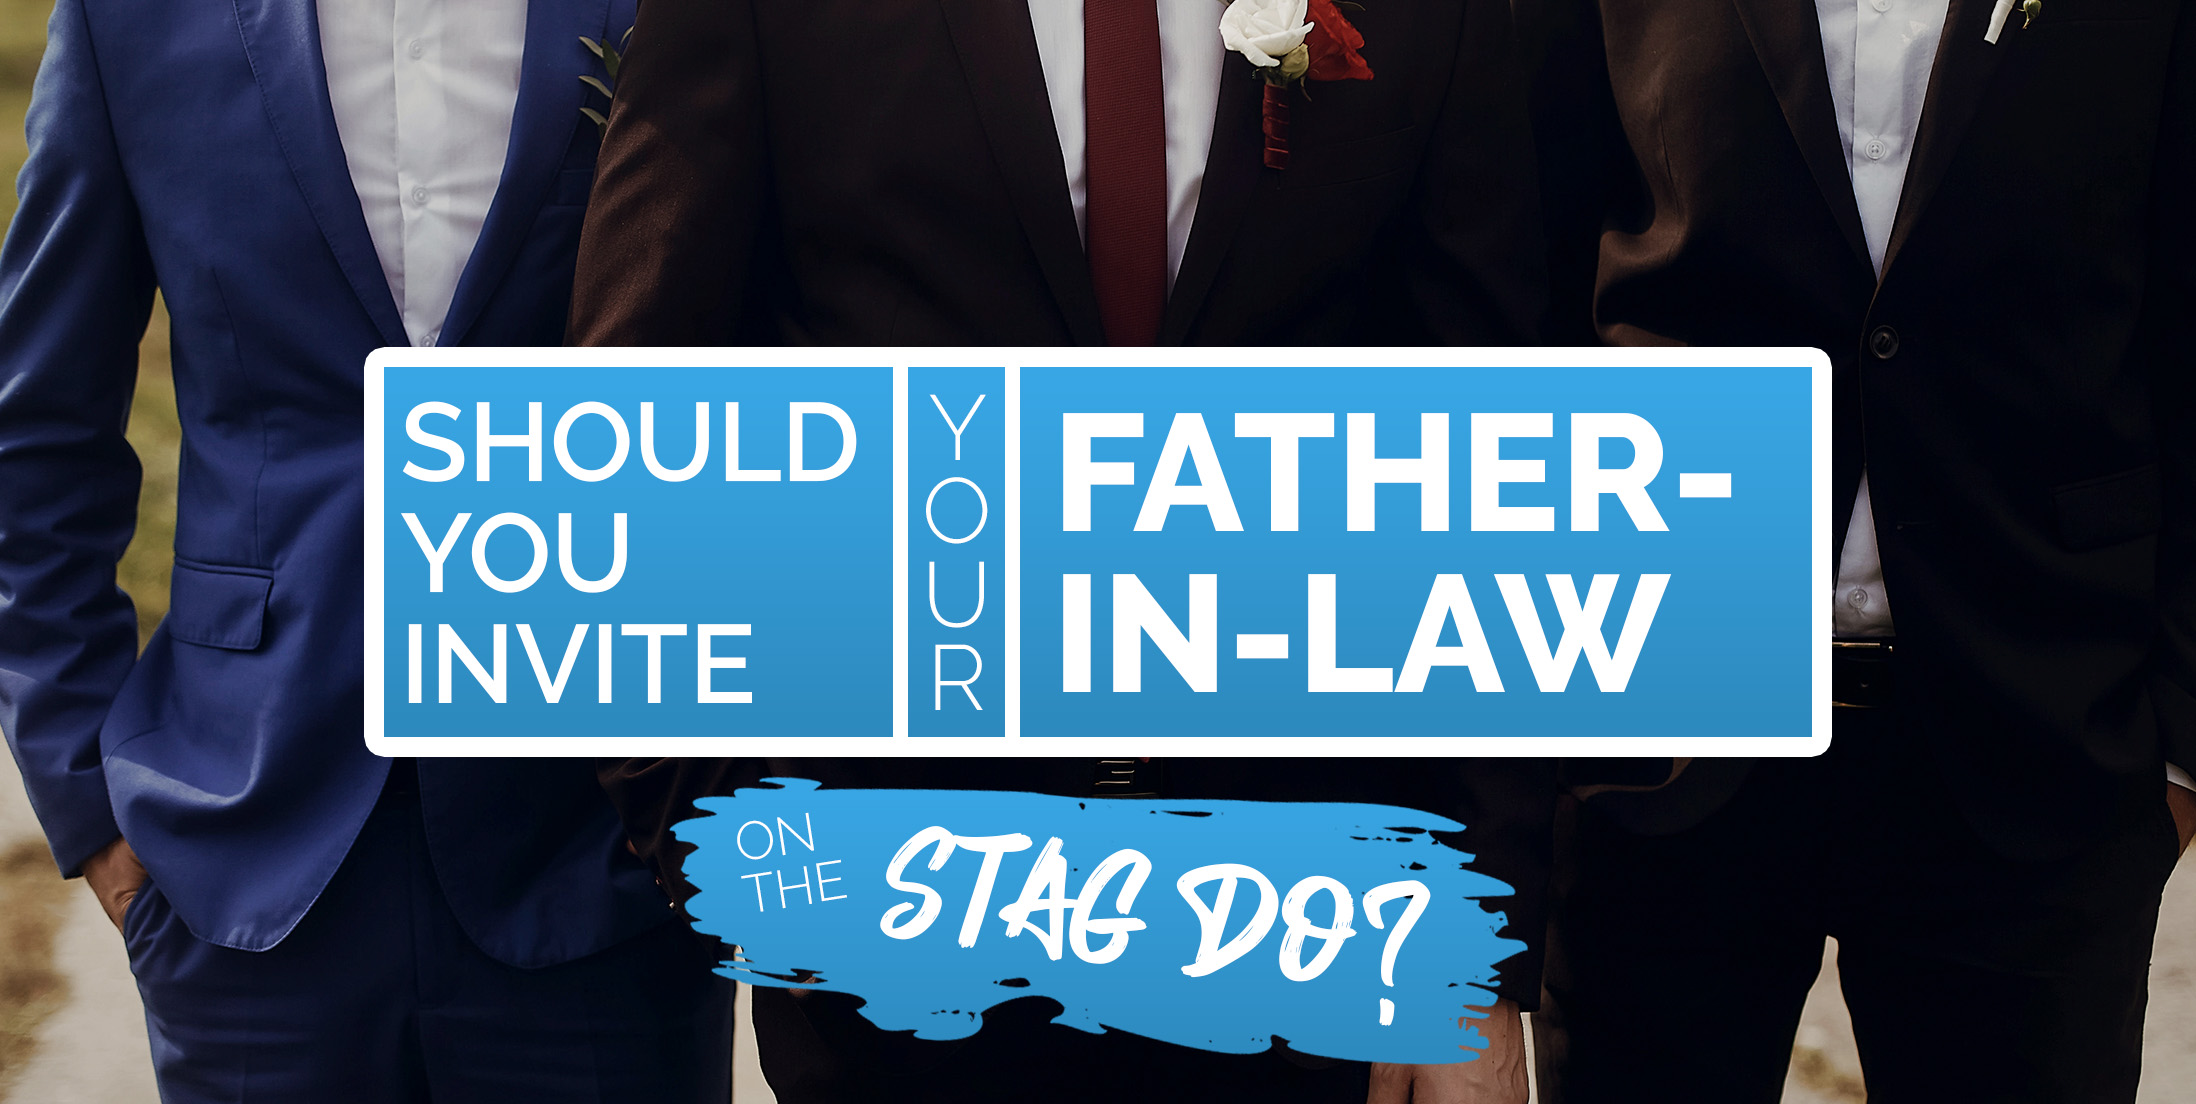 Should You Invite Dad on the Stag Do?